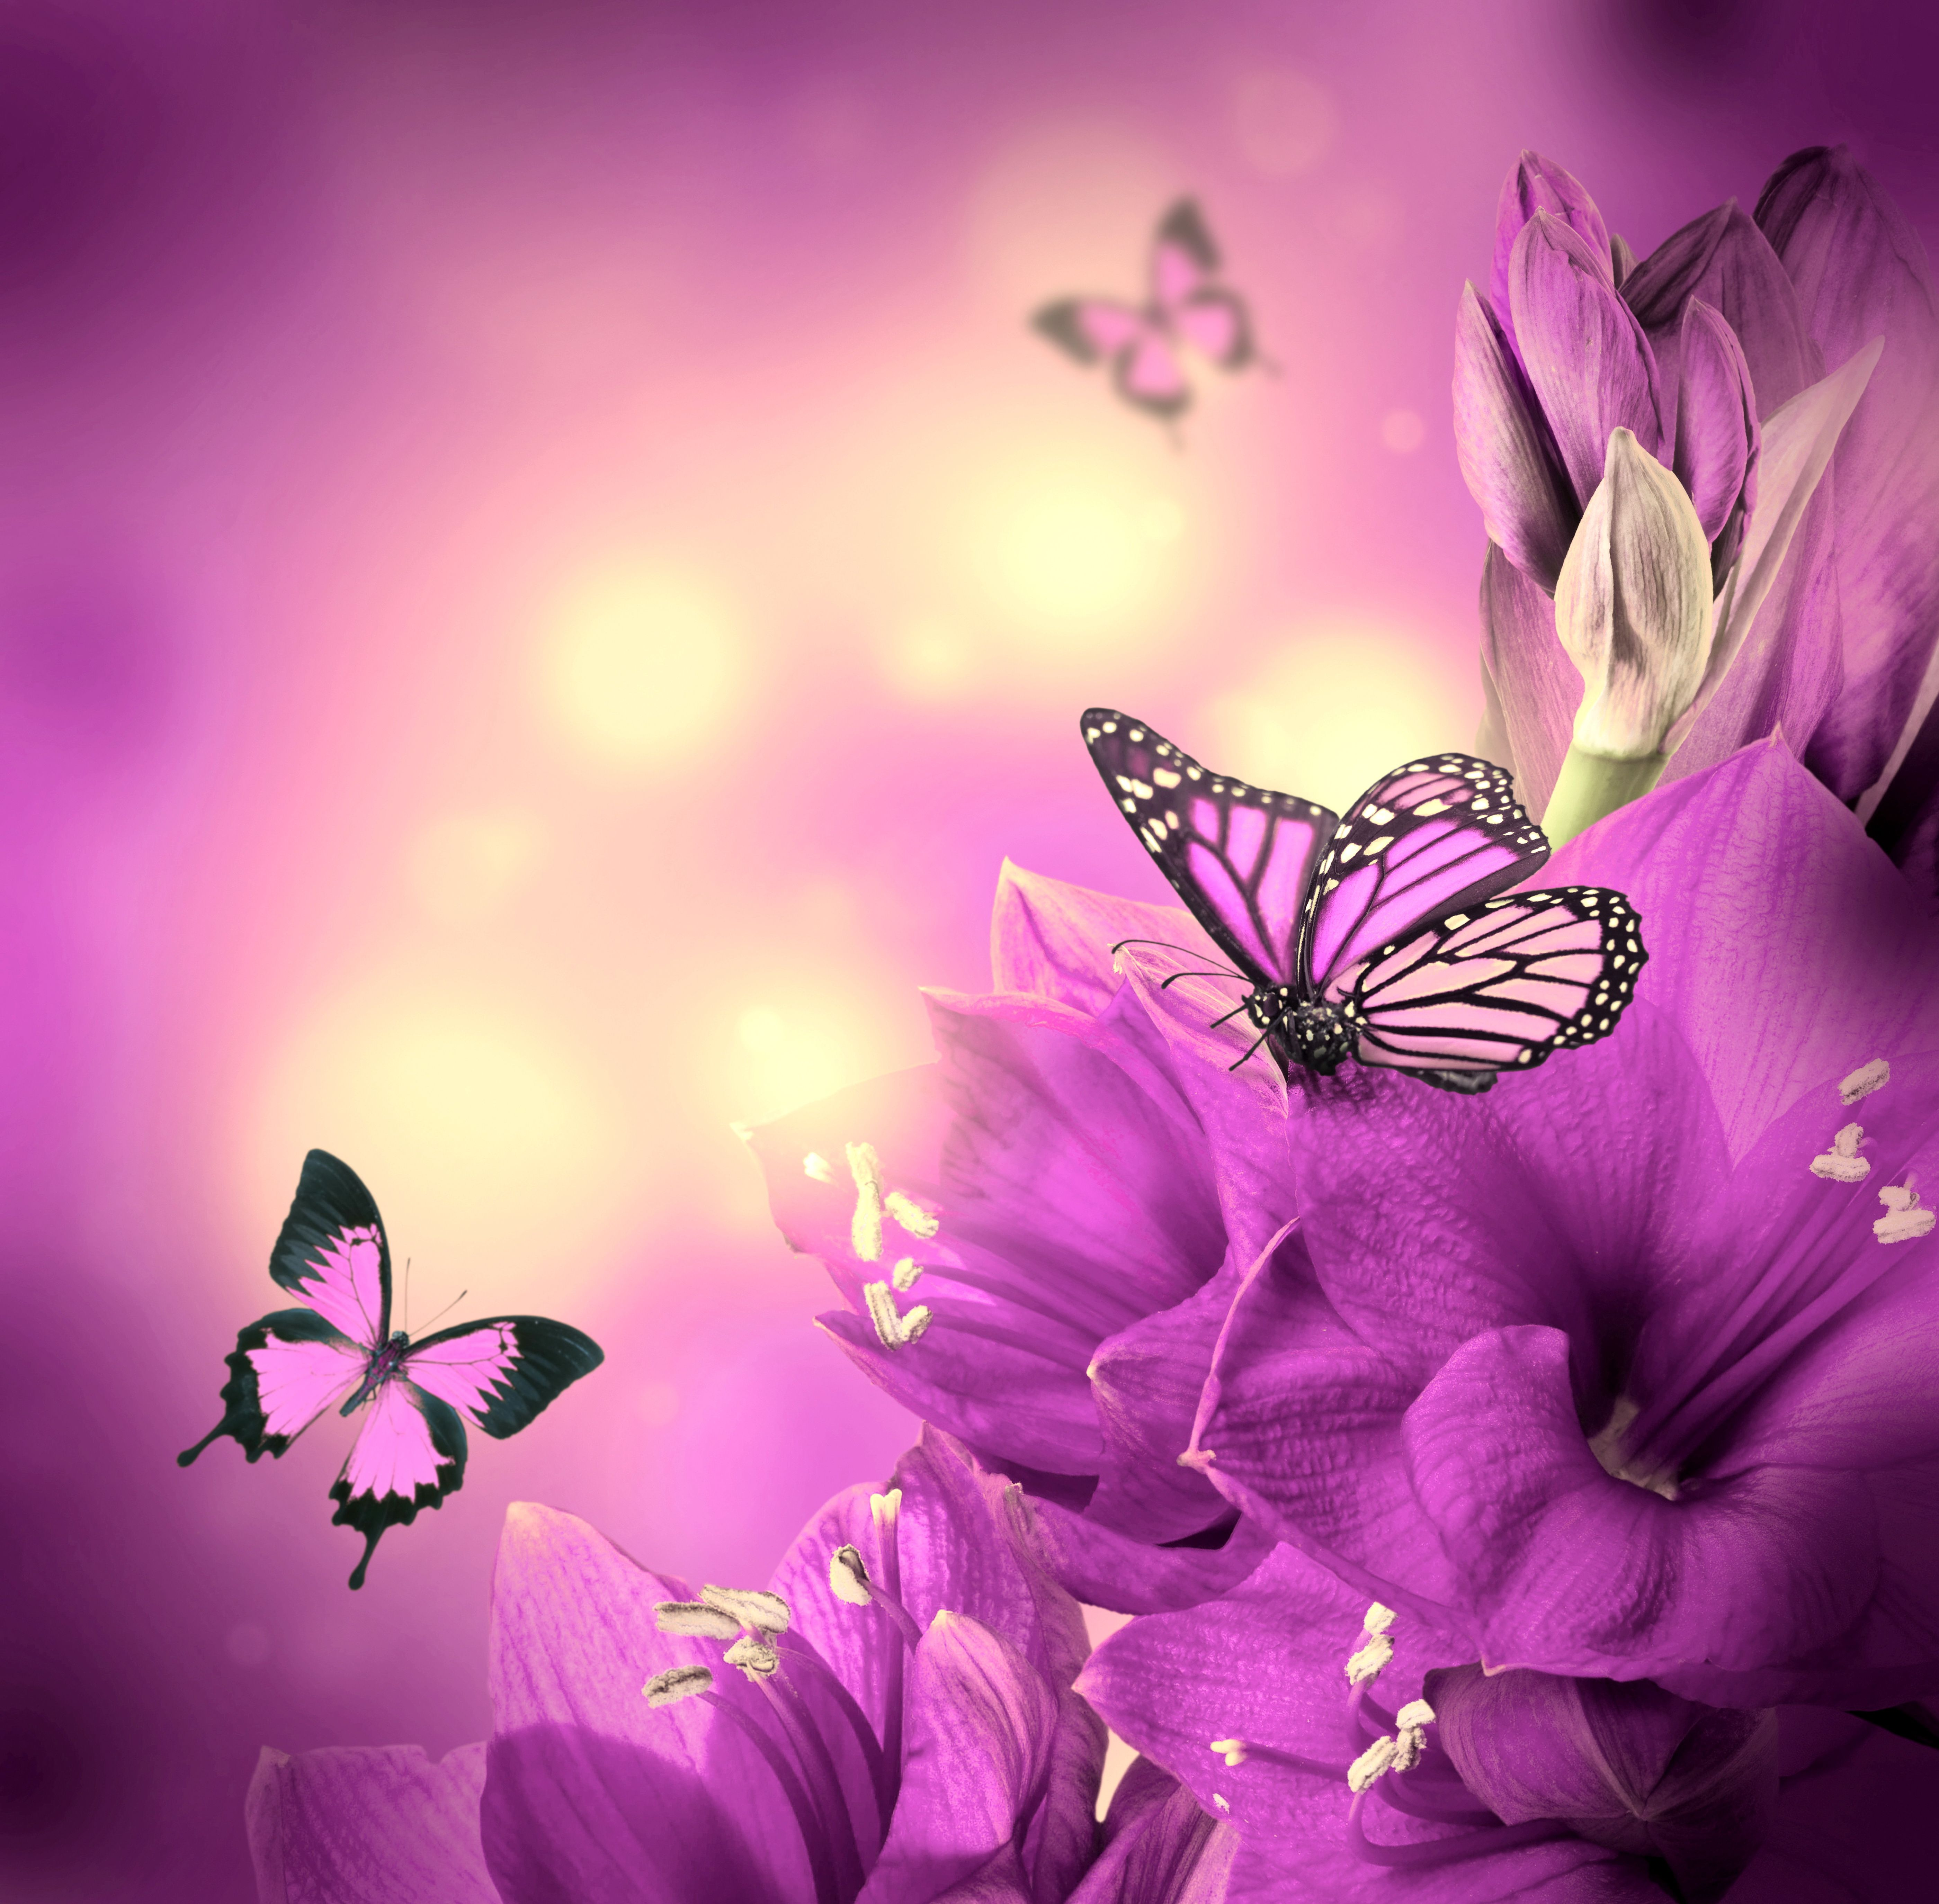 Purple Flowers and Butterflies Wallpapers - Top Free ...